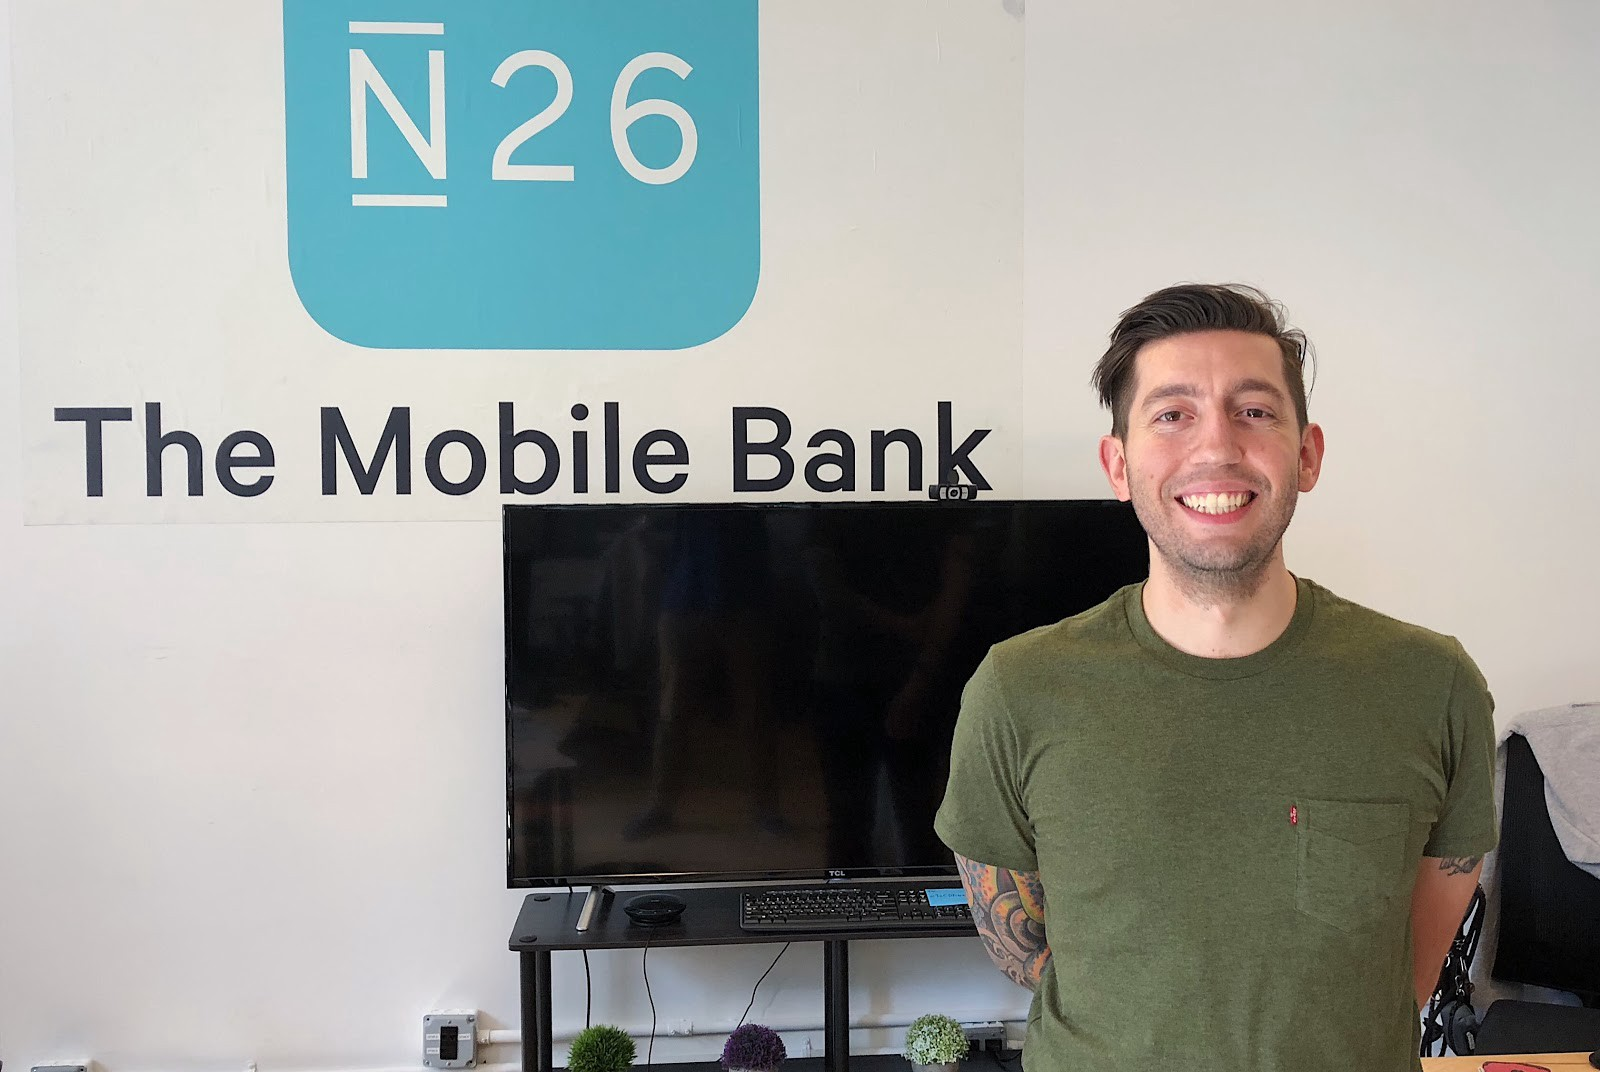 Interview with Fotios Hatzis, Senior Software Engineer at N26 in NYC